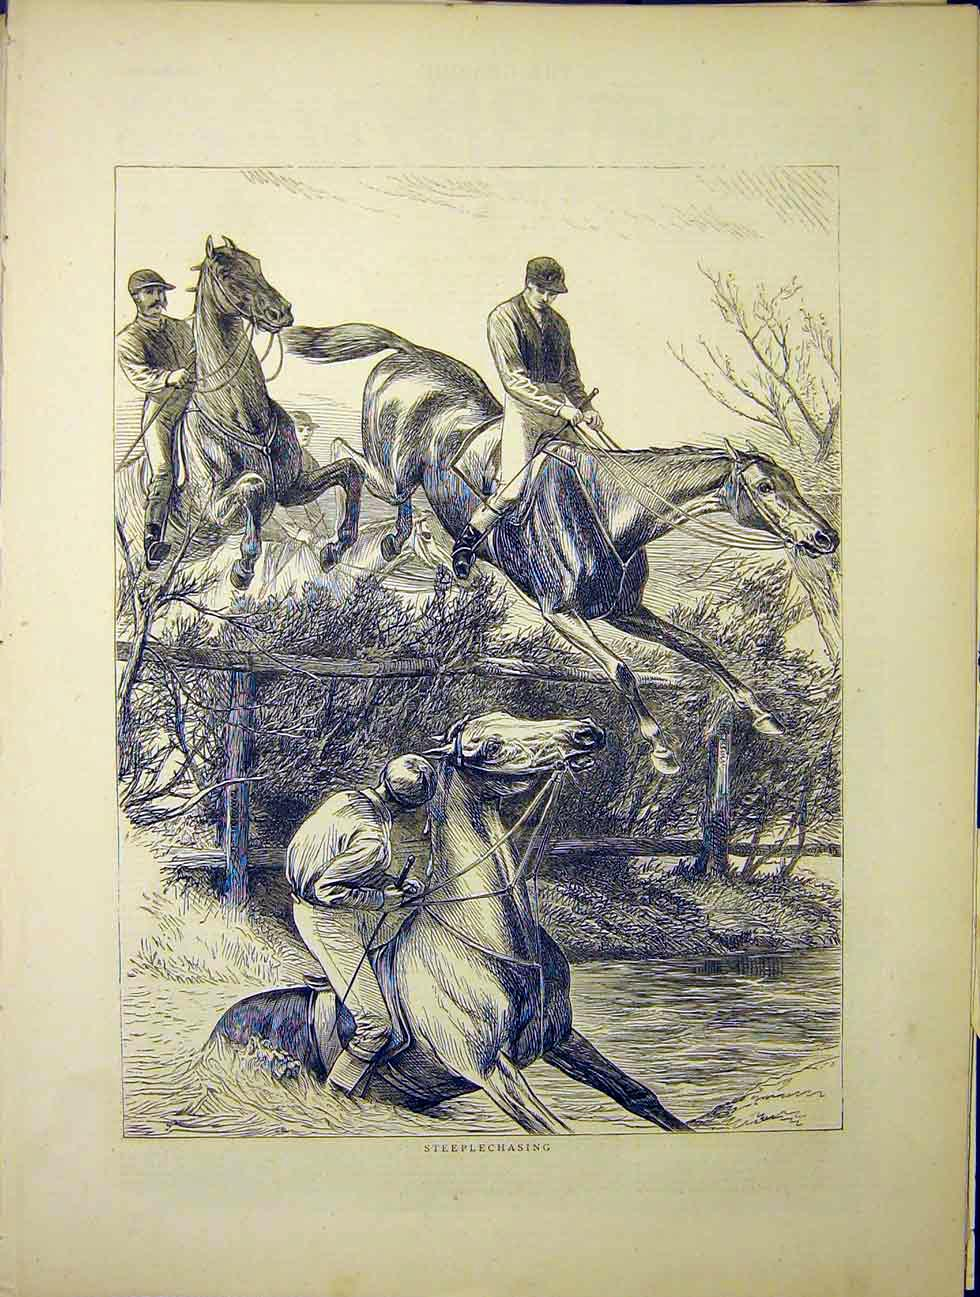 Print Steeplechasing Horses Sketch 1870 66Mbb1 Old Original